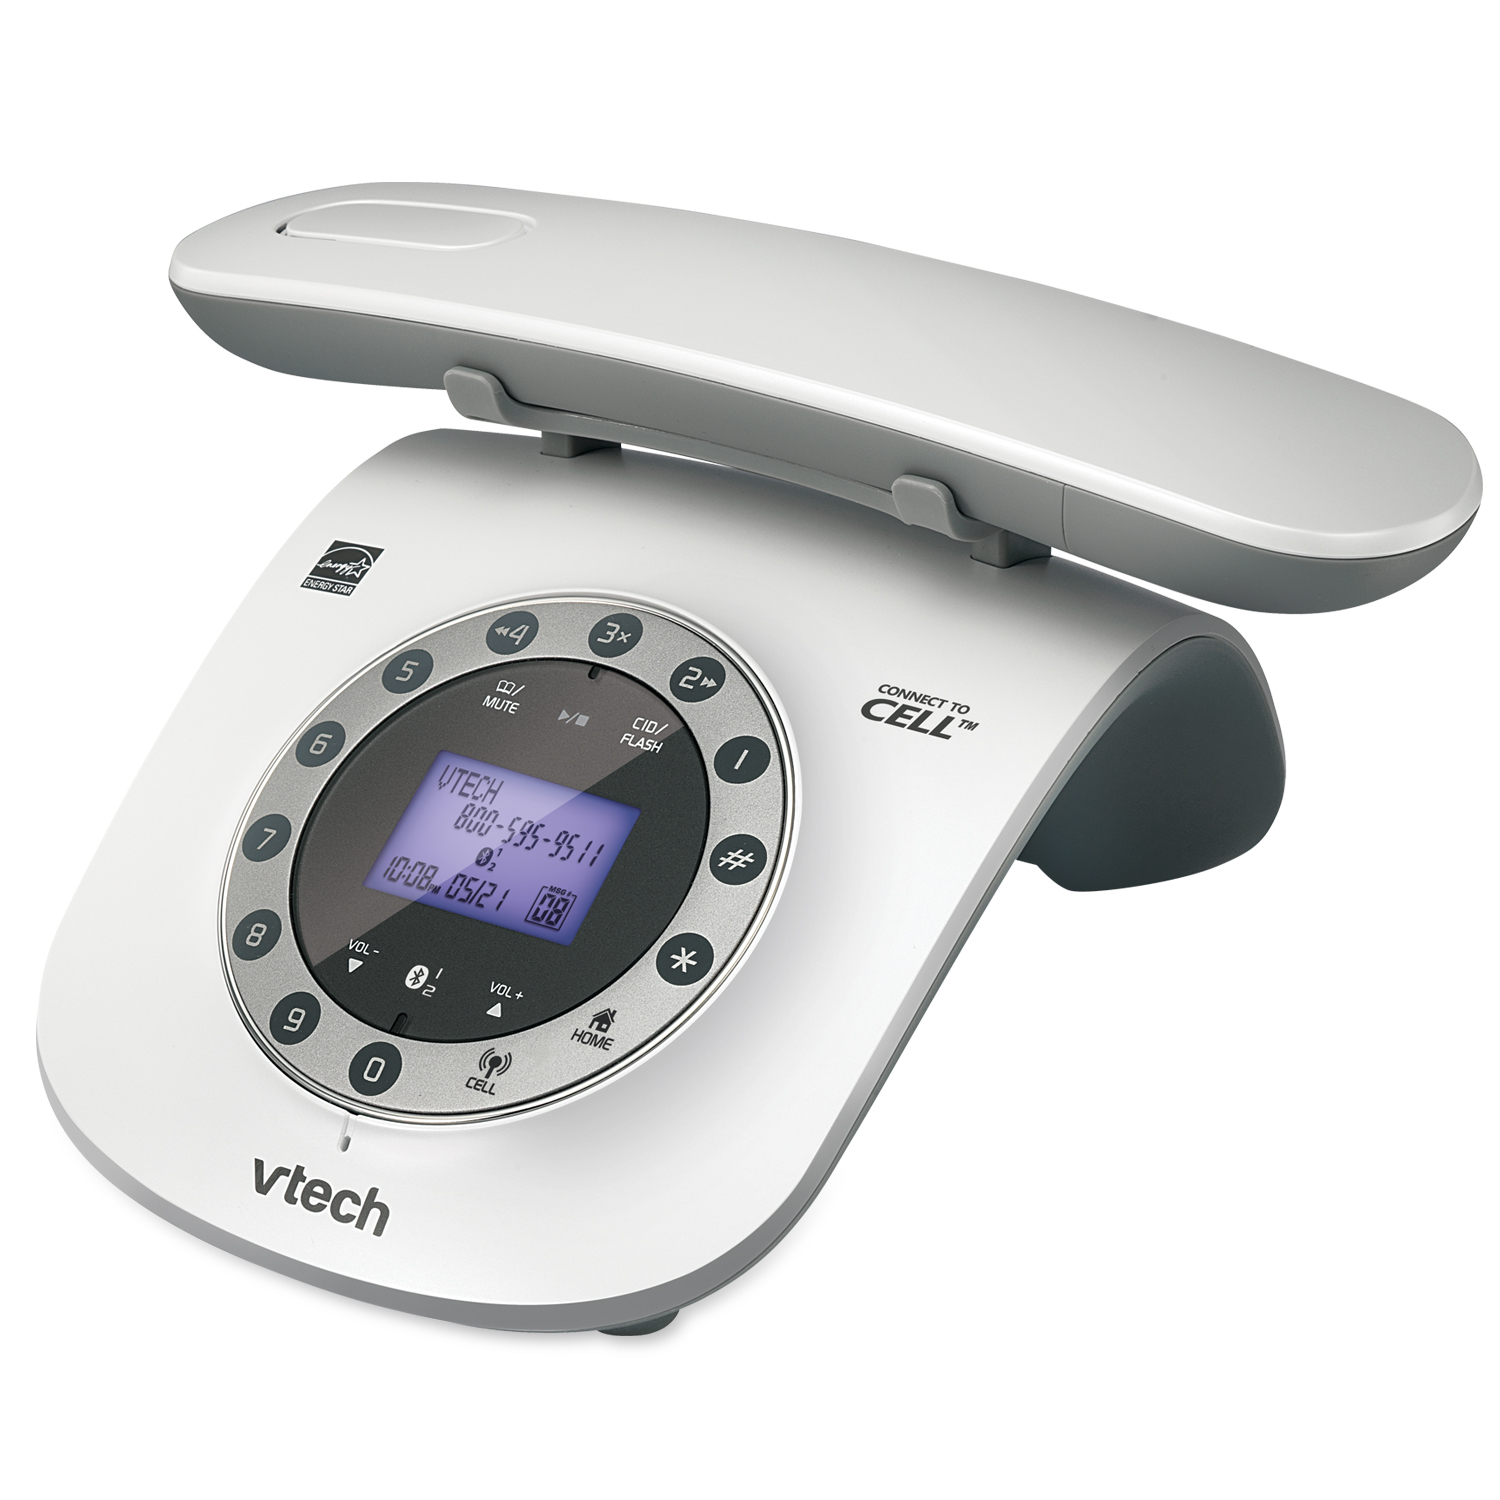 Vtech Retro Phone With Connect To Cell